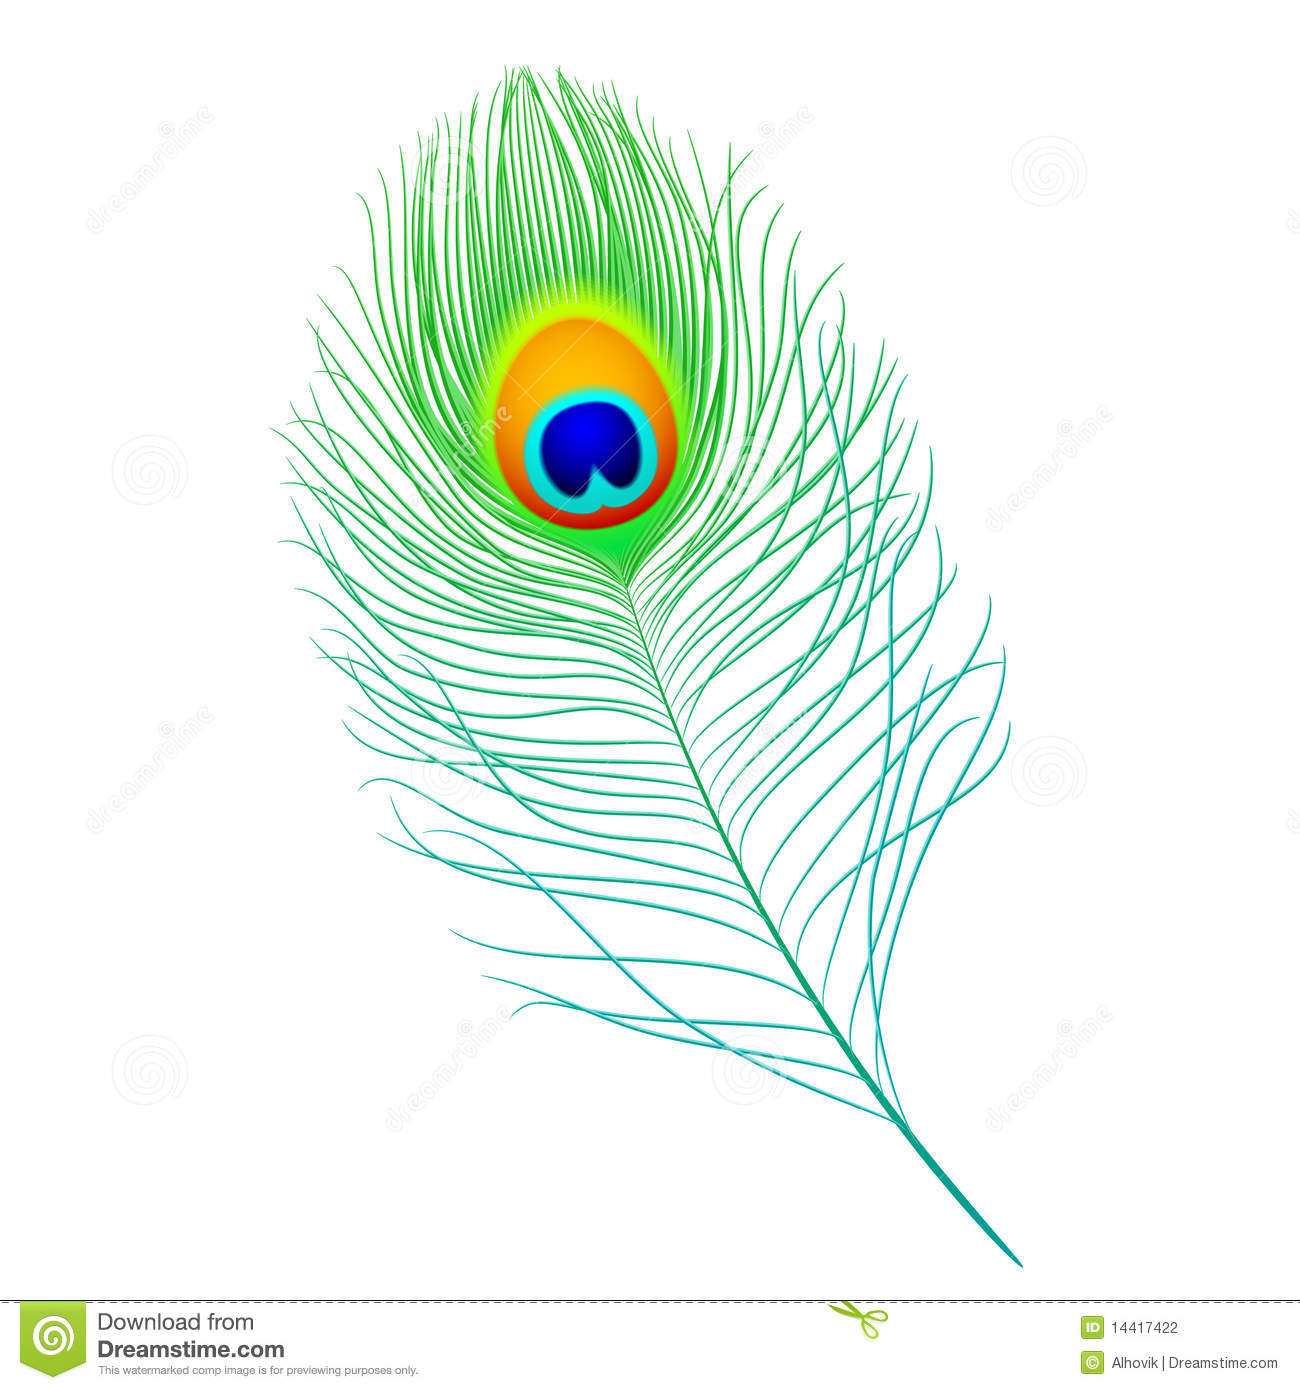 Peacock feather clip art.